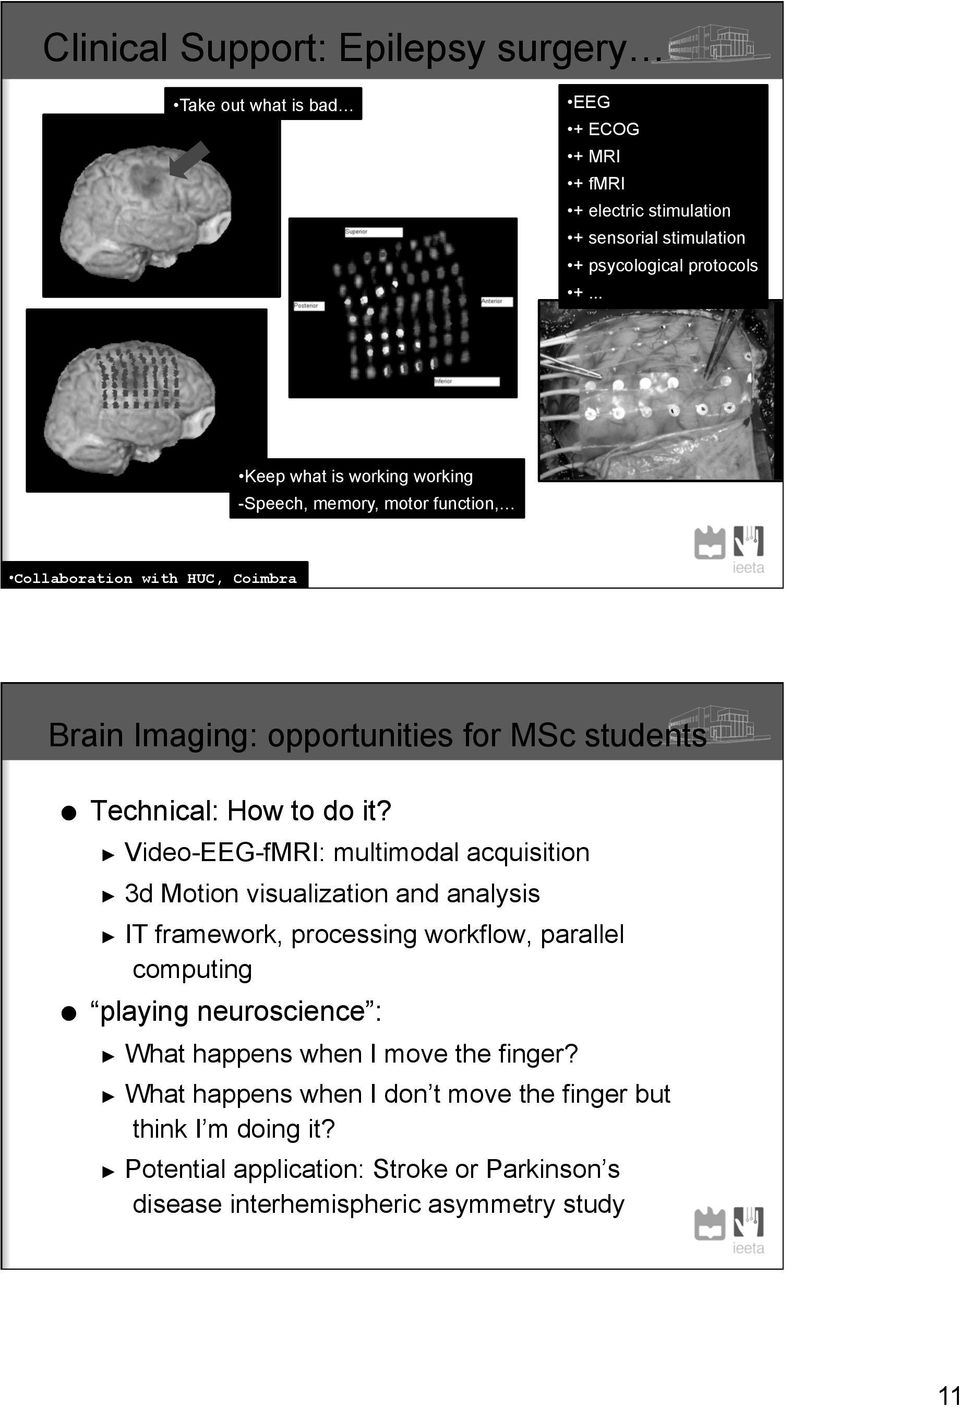 Video-EEG-fMRI: multimodal acquisition 3d Motion visualization and analysis IT framework, processing workflow, parallel computing playing neuroscience : What happens